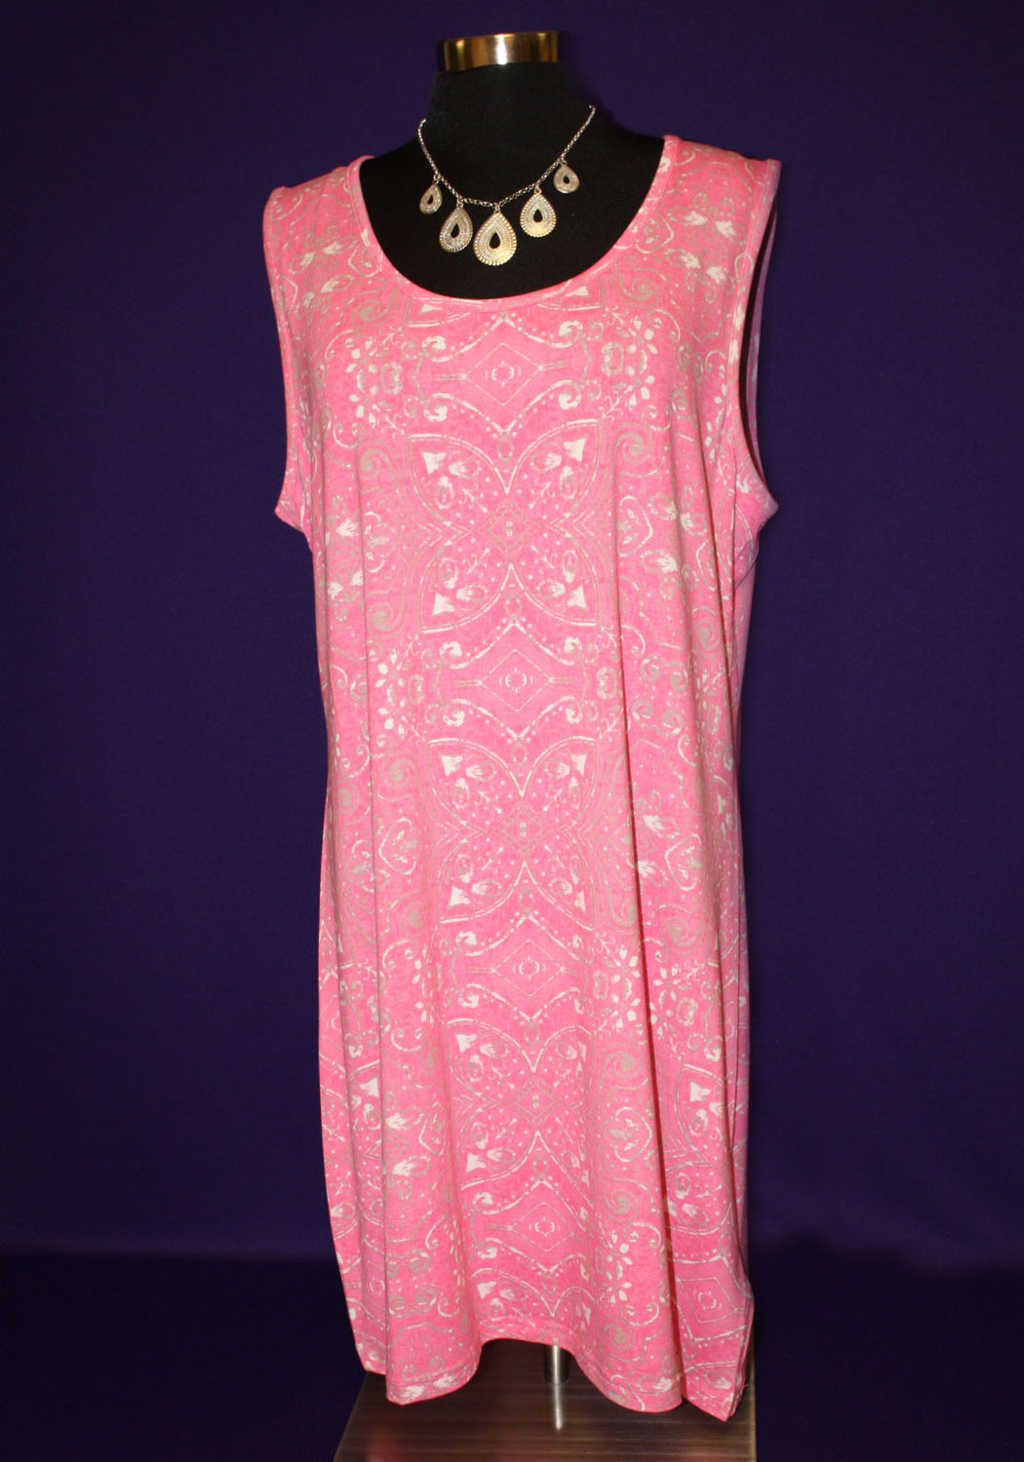 Pink flowy dress with gold design available at Mon General Hospital Apparel Gift Shop